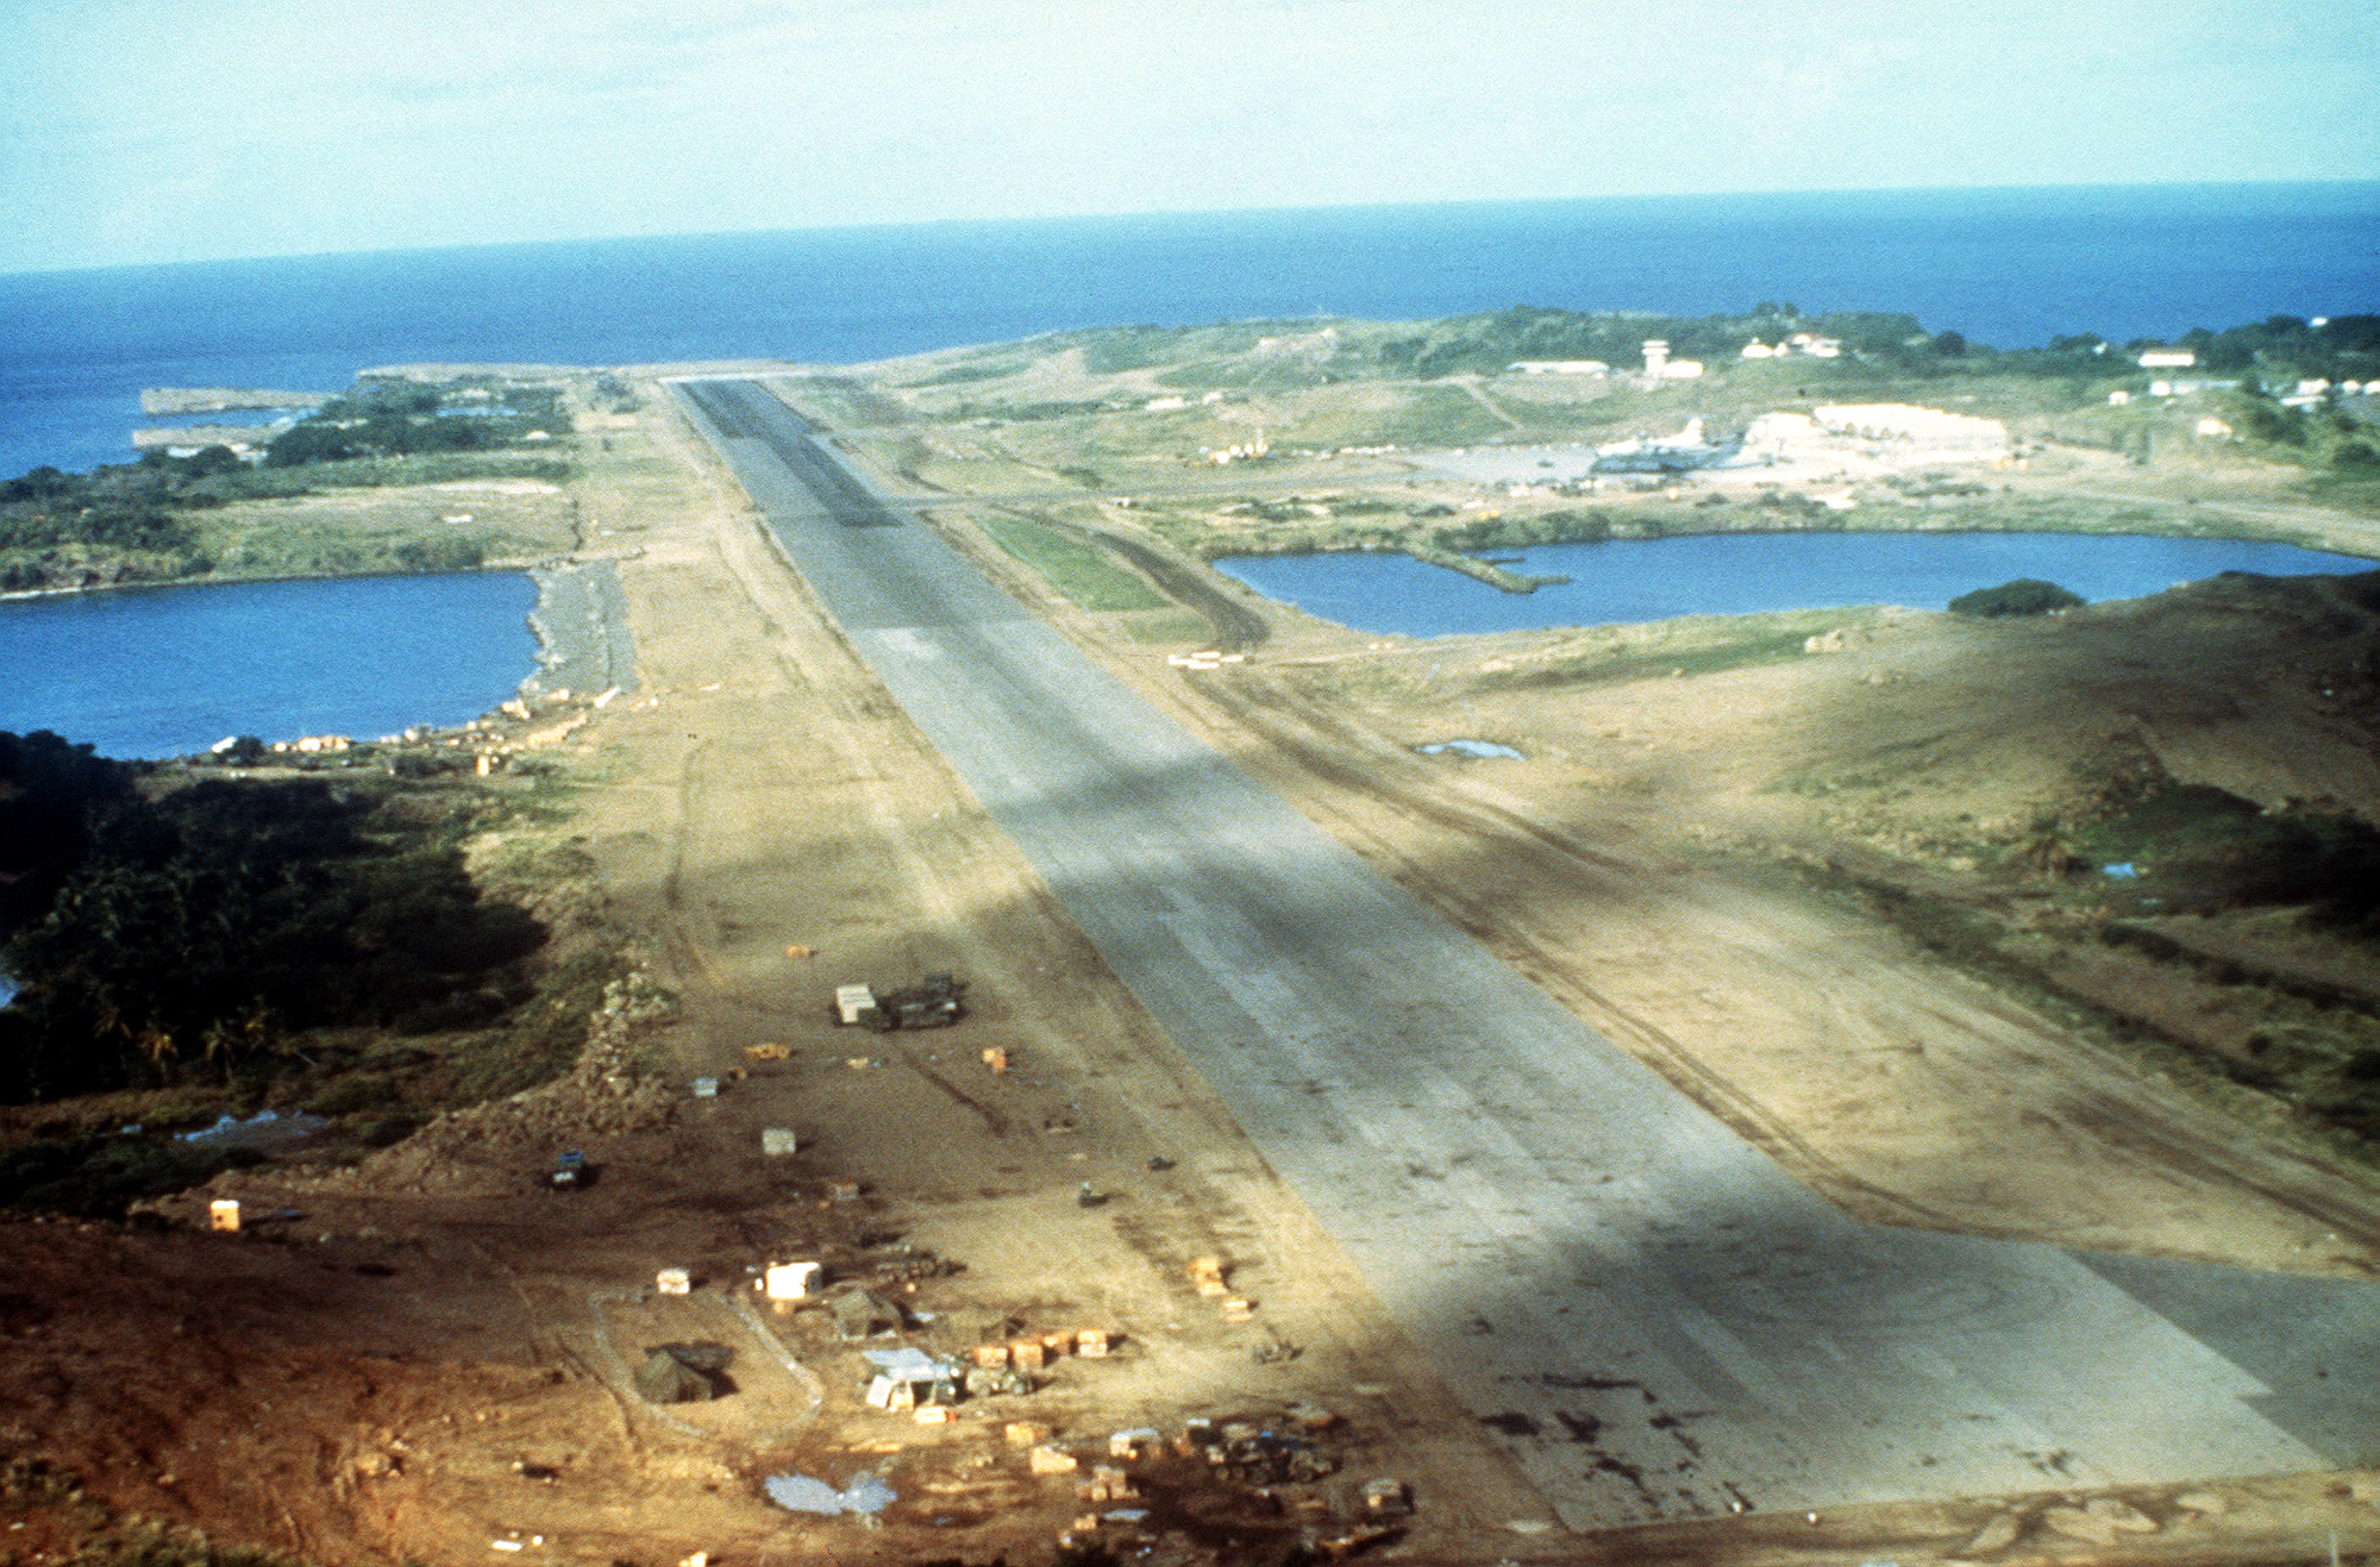 An aerial view of Point Salines Airport and runway during Operation URGENT FURY